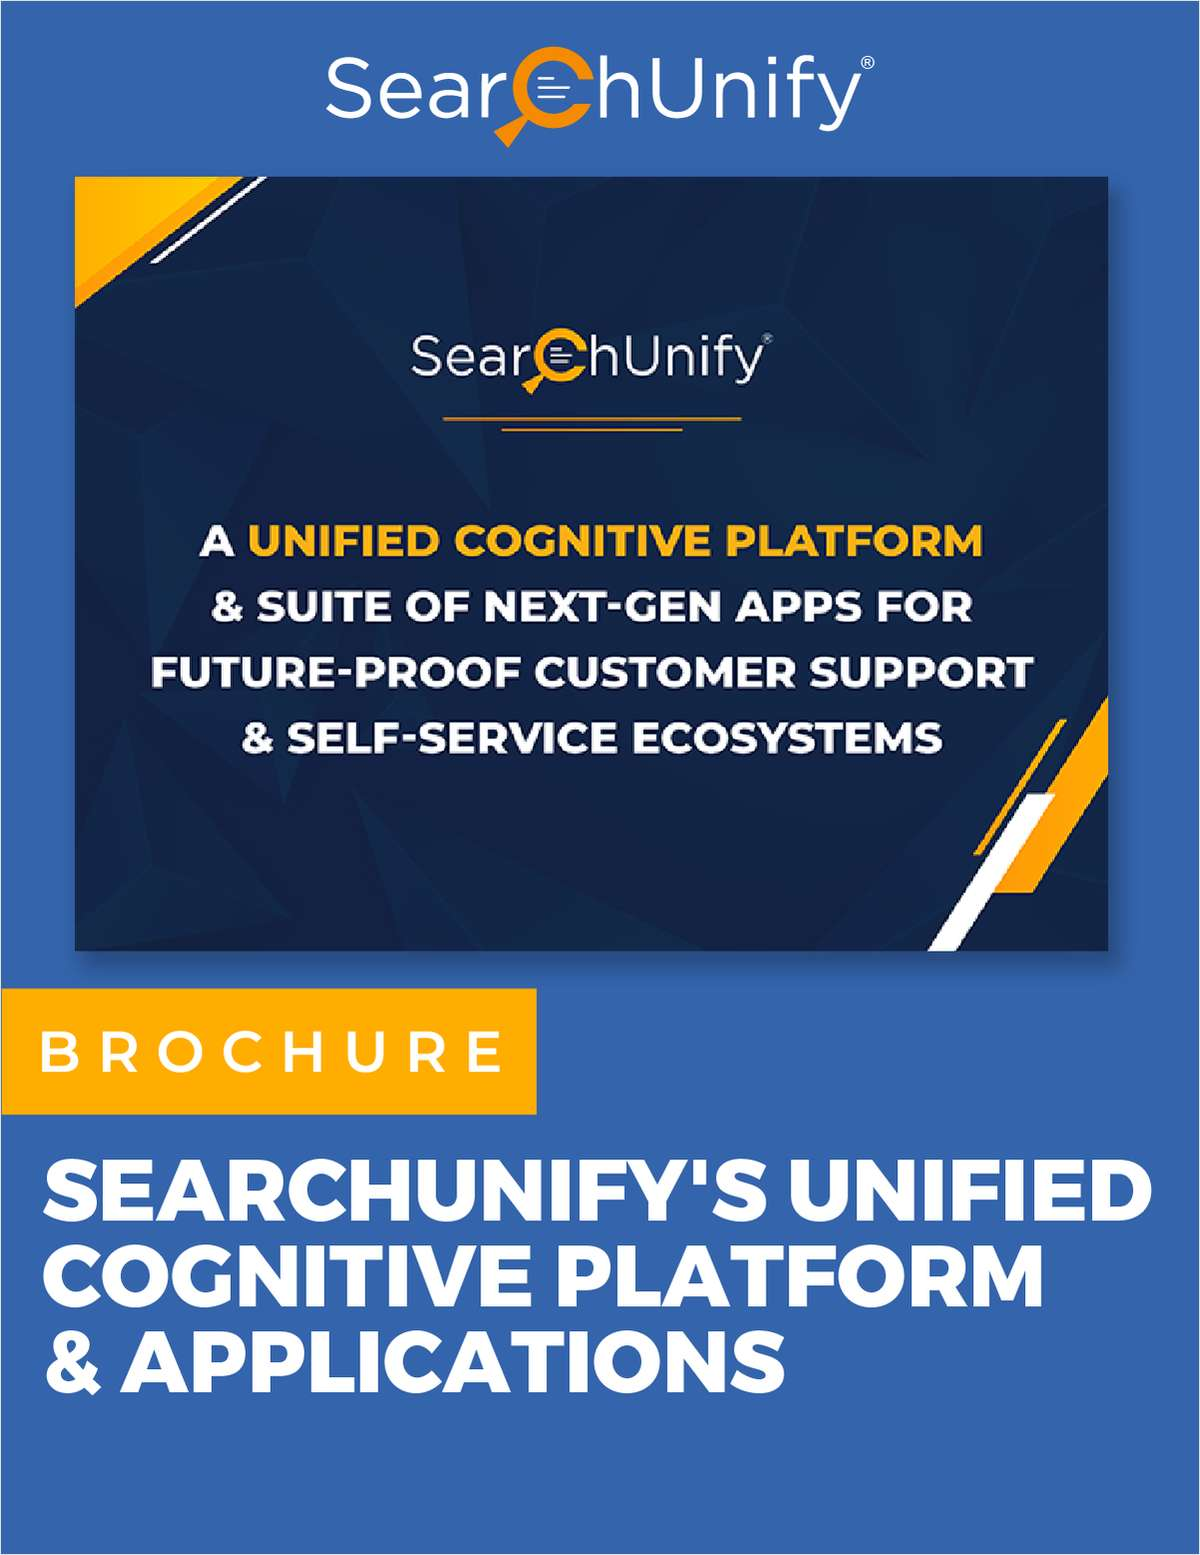 A Unified Cognitive Platform & Suite of Next-Gen Apps for Future-Proof Customer Support & Self-Service Ecosystems